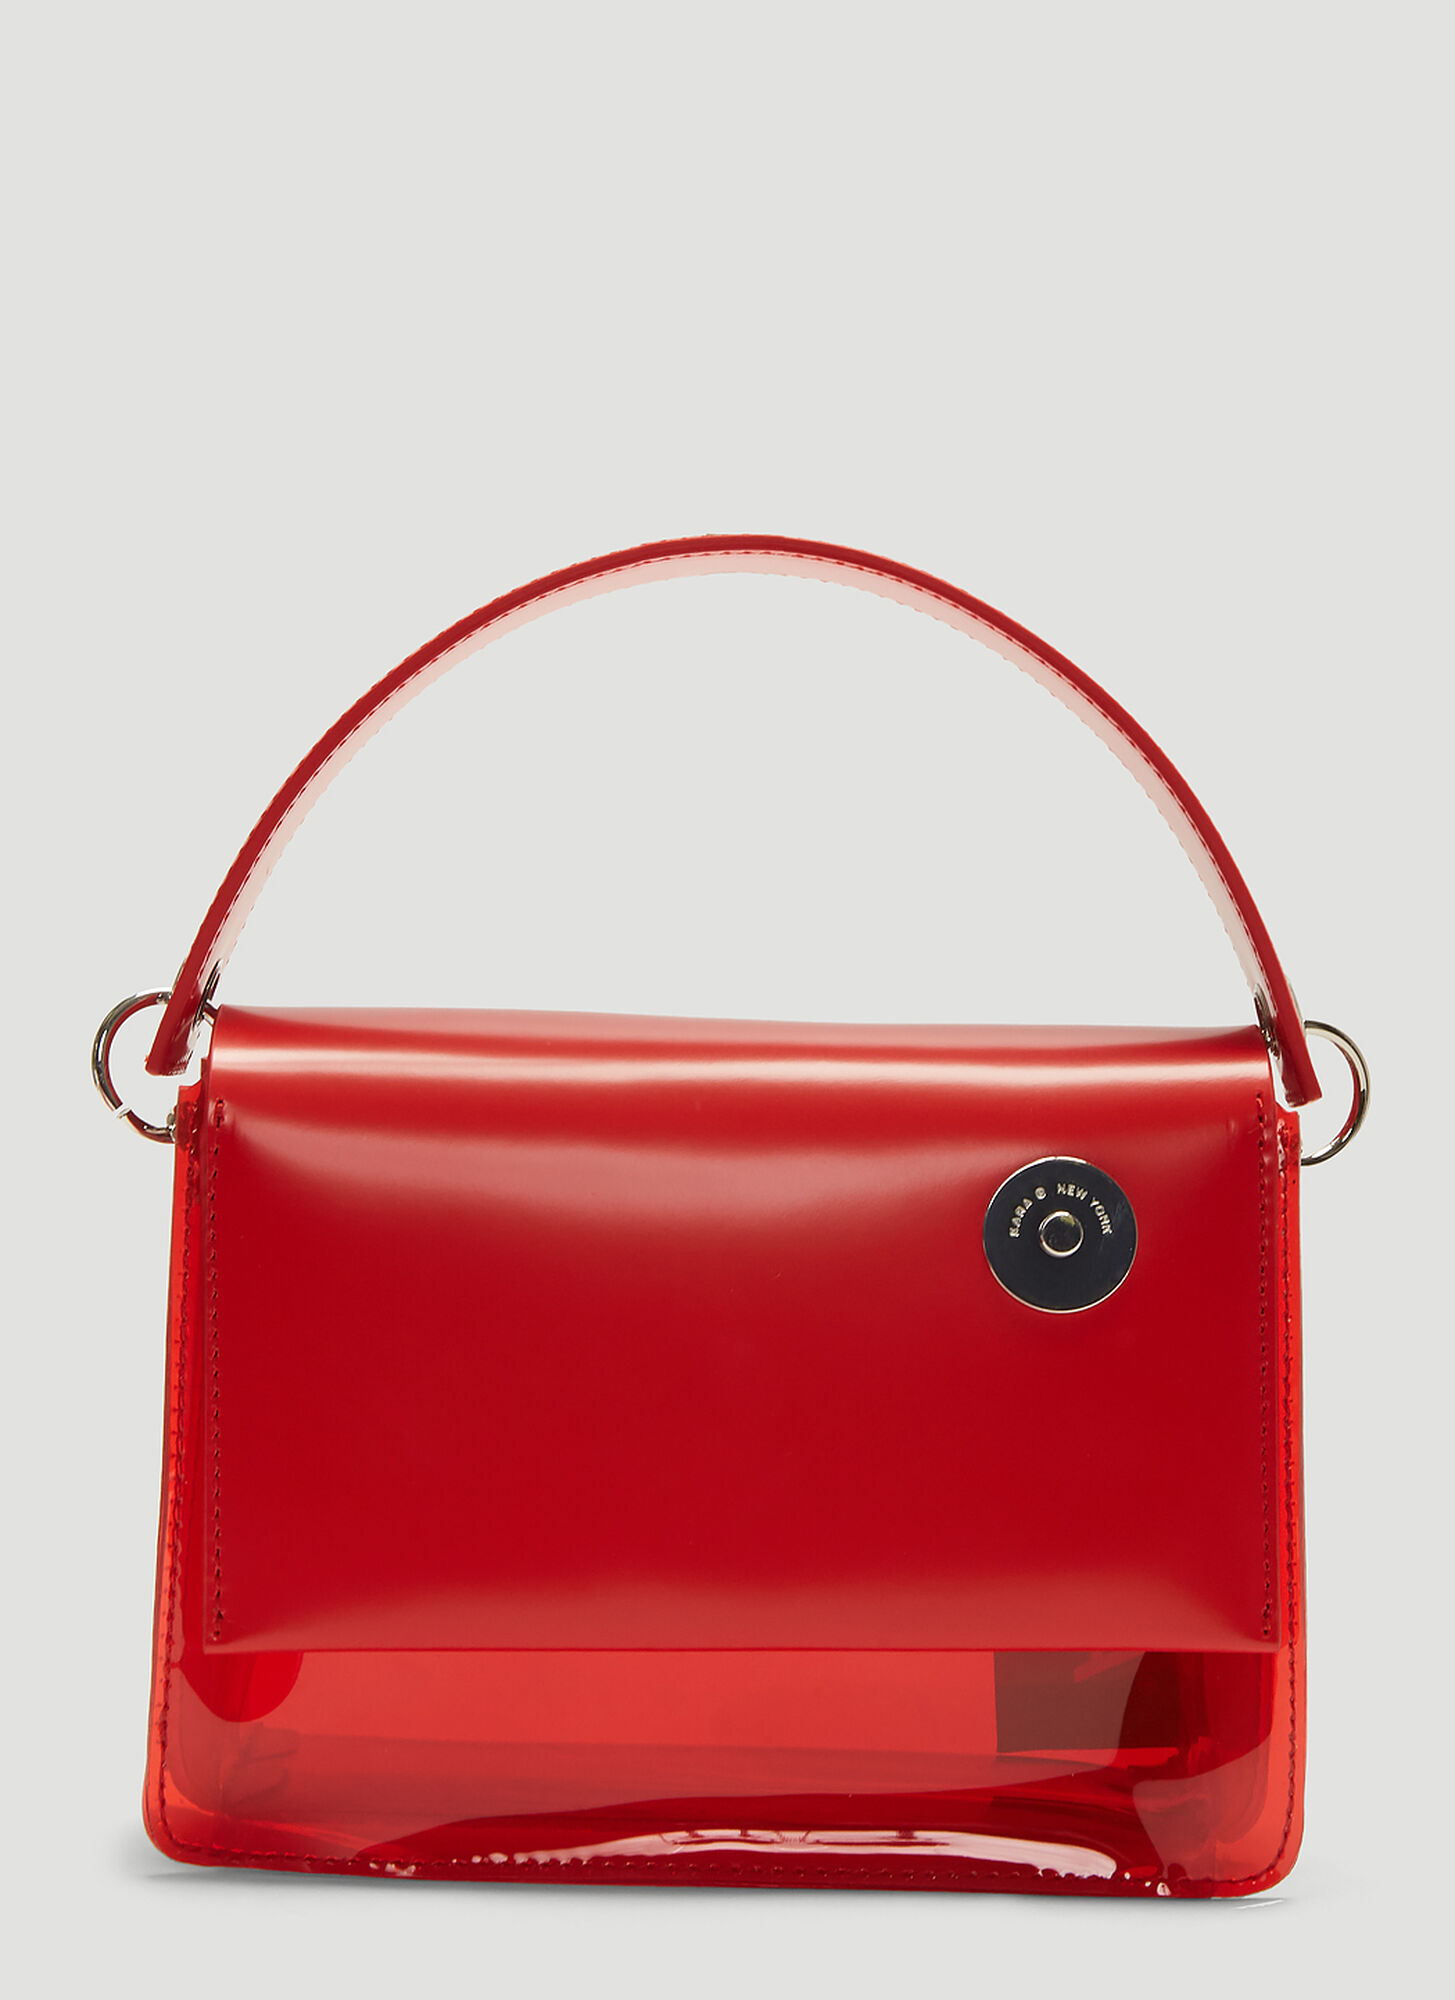 Kara Baby Pinch Shoulder Bag in Red